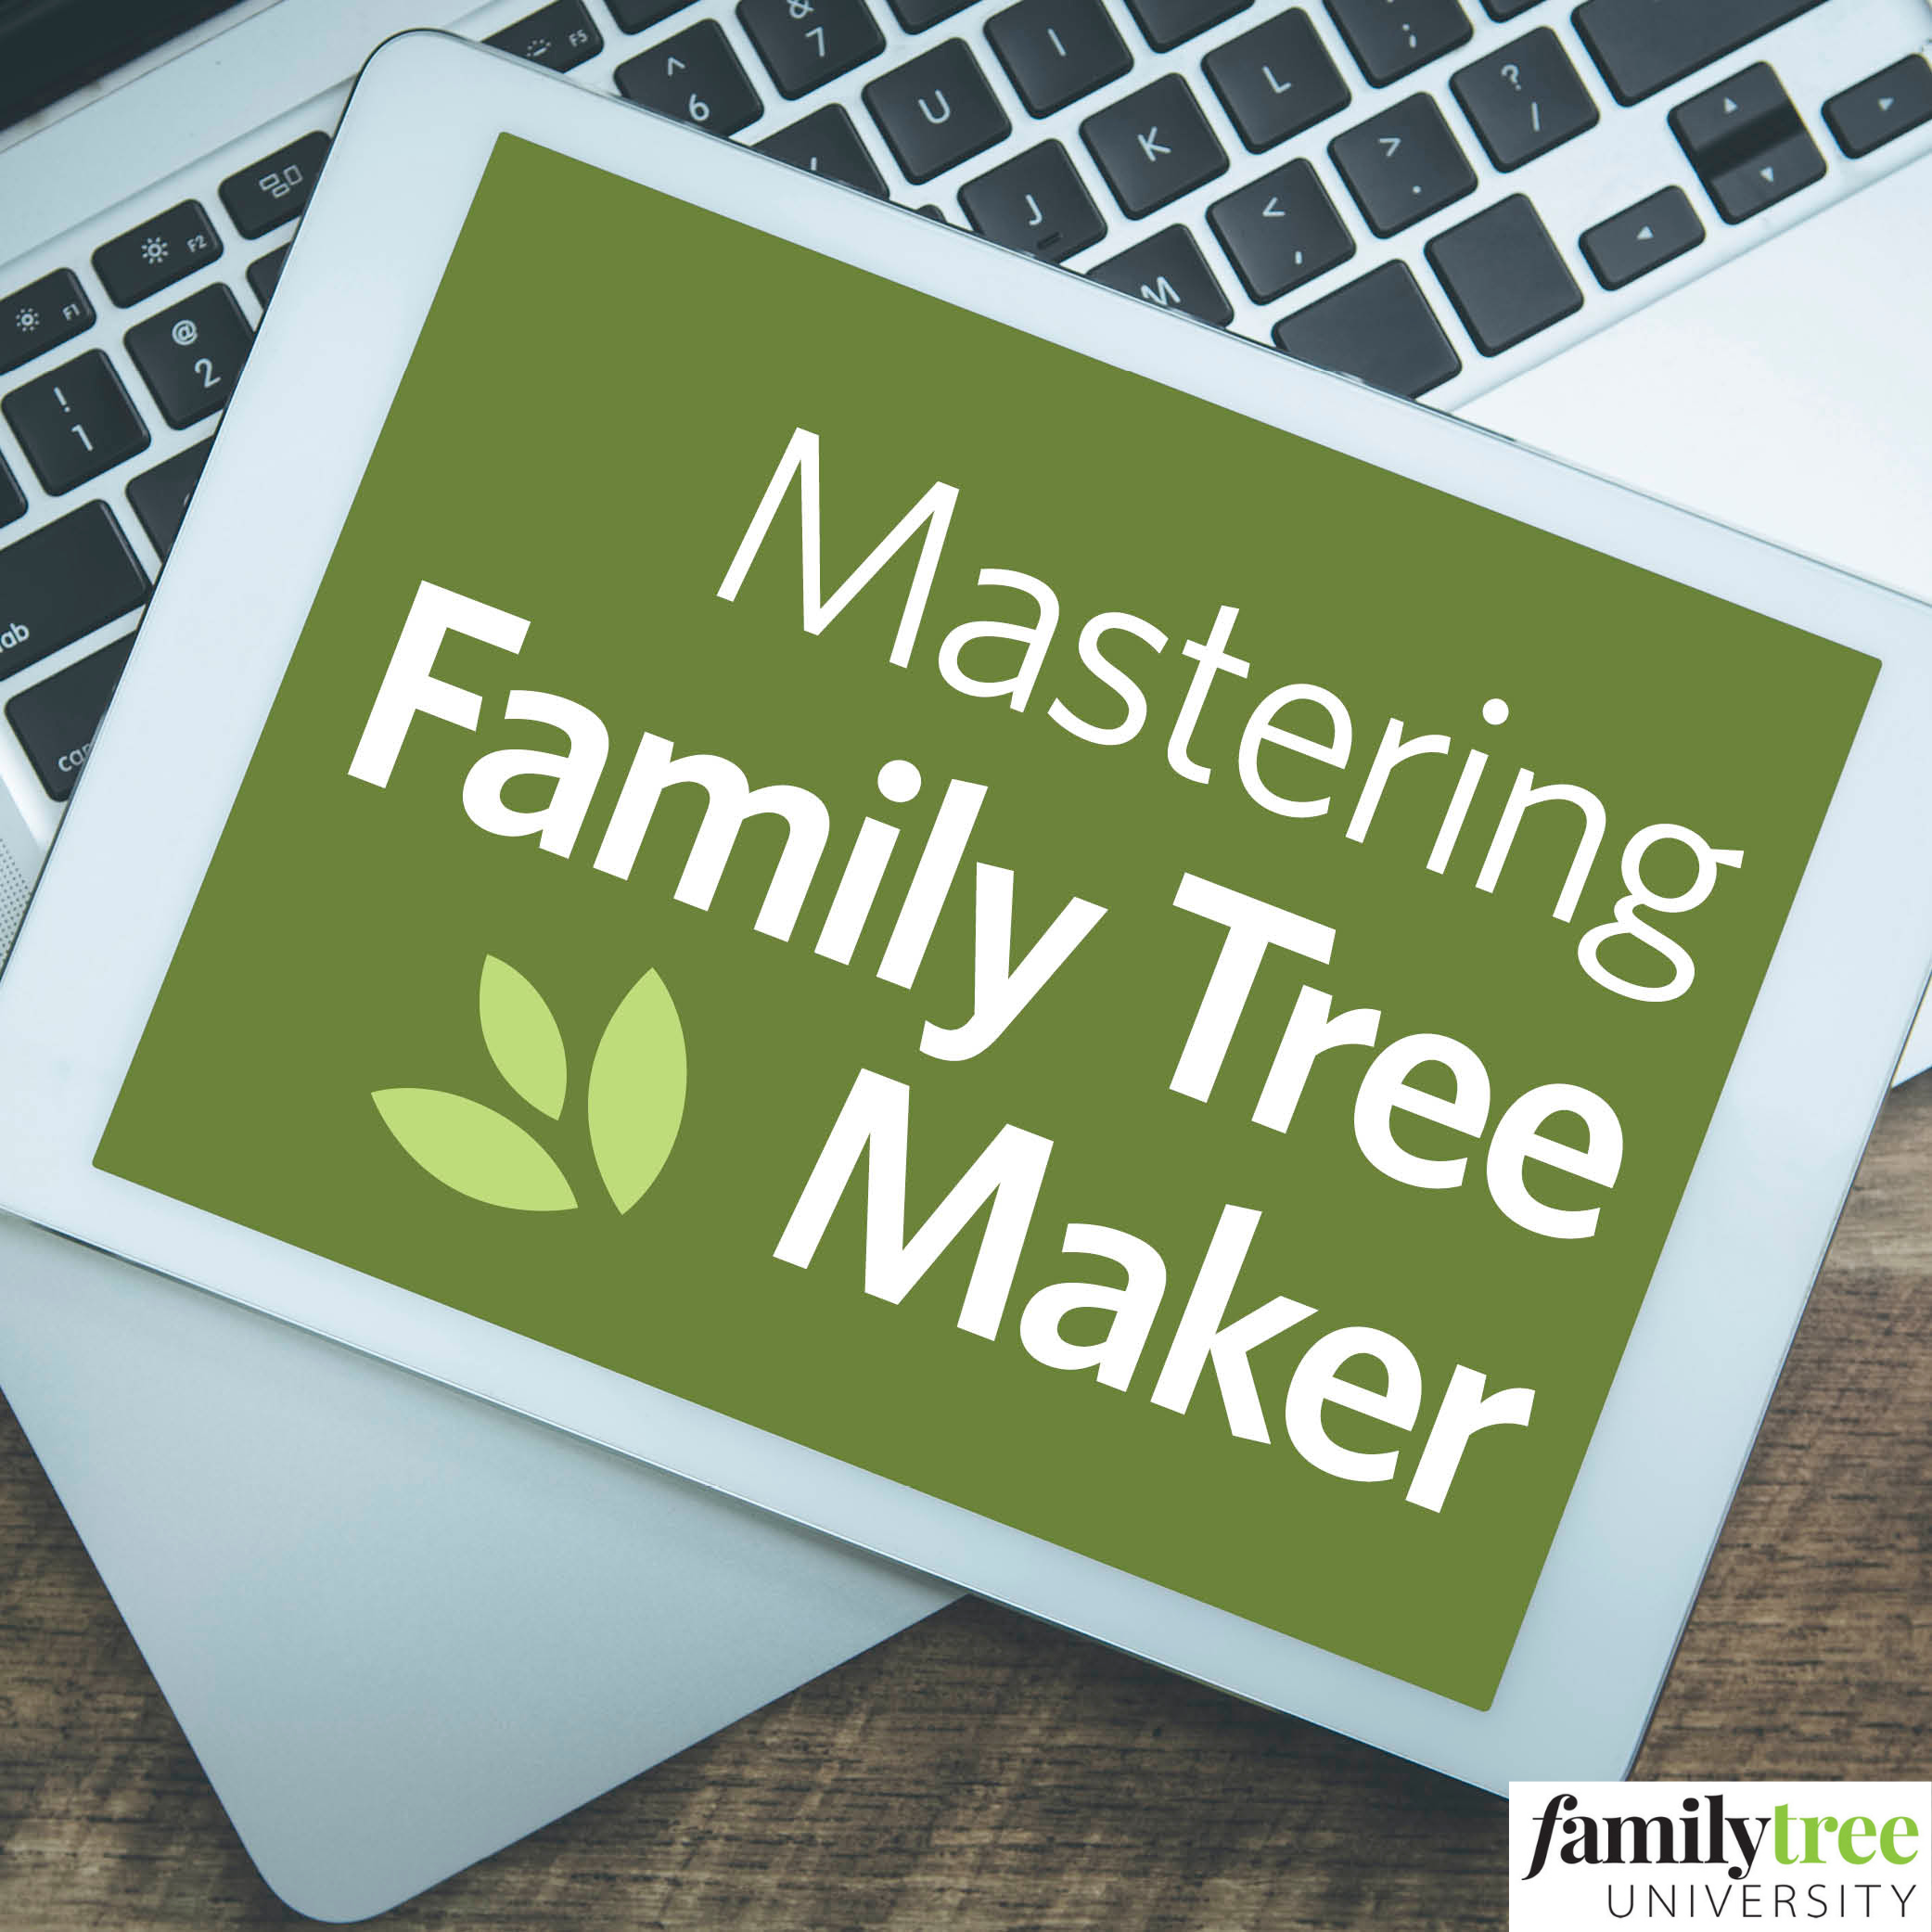 Mastering Family Tree Maker - Family Tree University